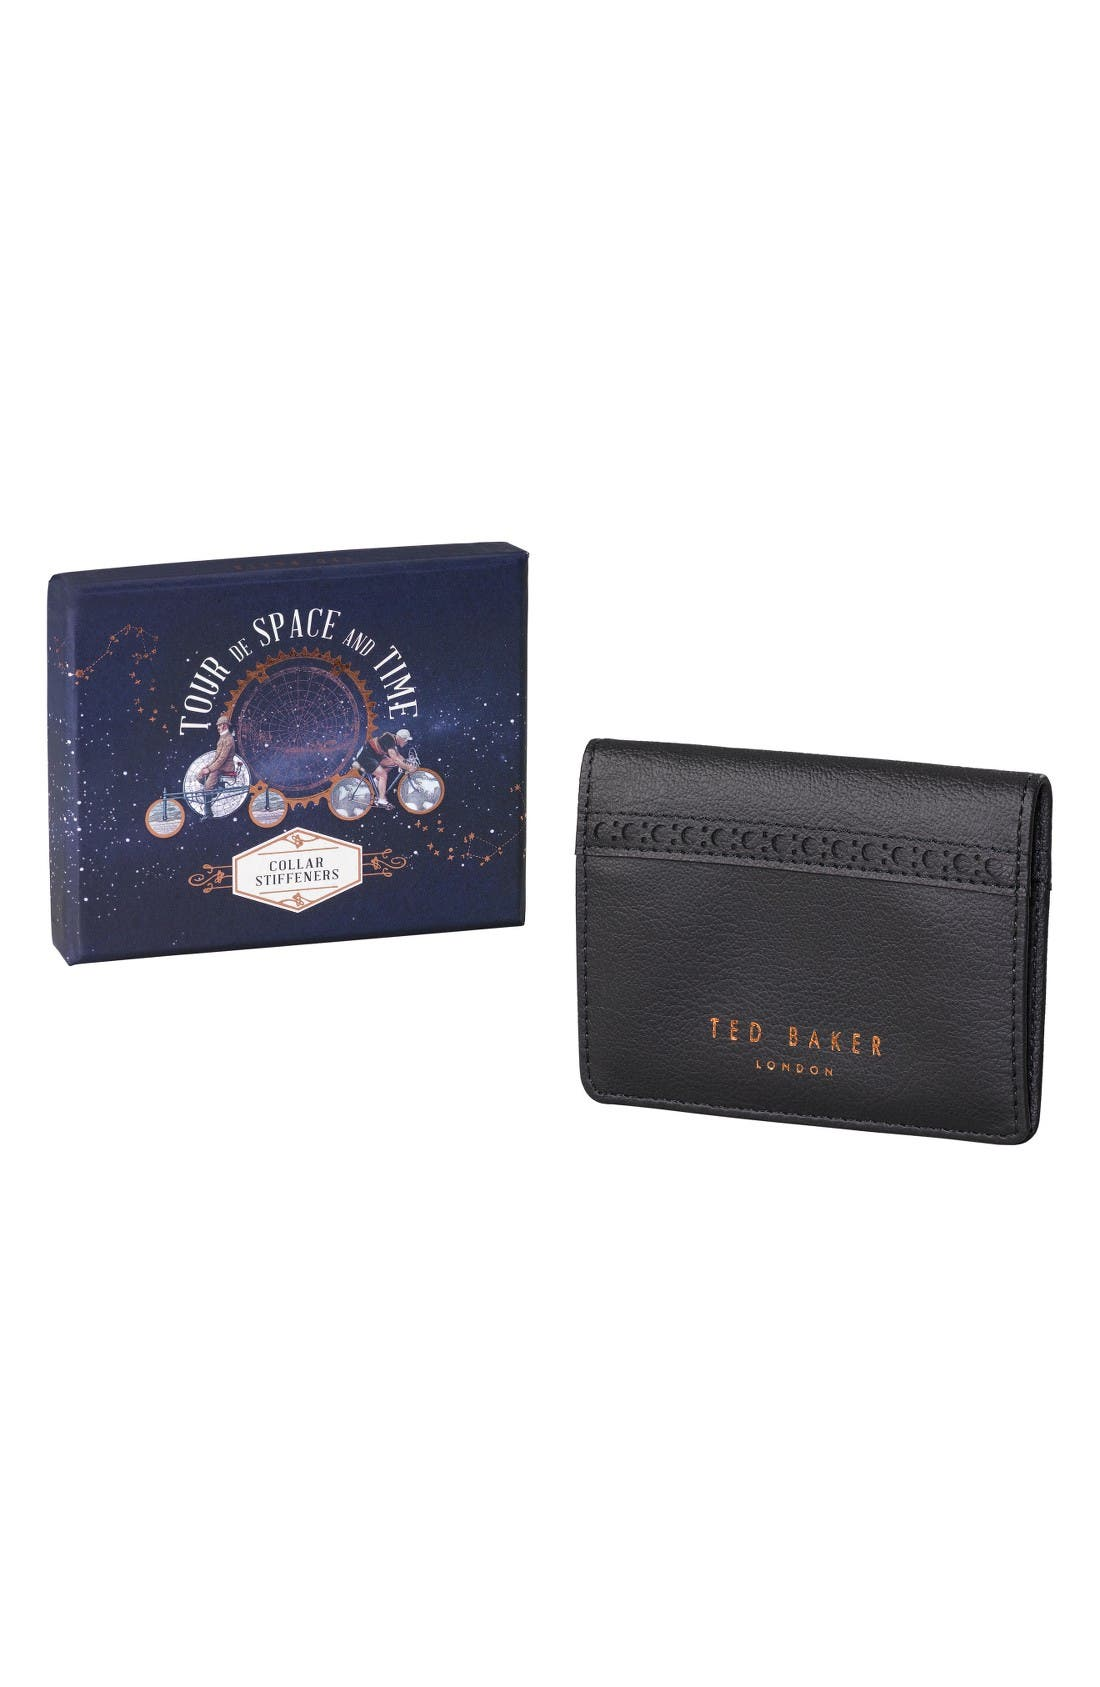 Main Image - Ted Baker London Set of 6 Collar Stays in Brogued Pouch